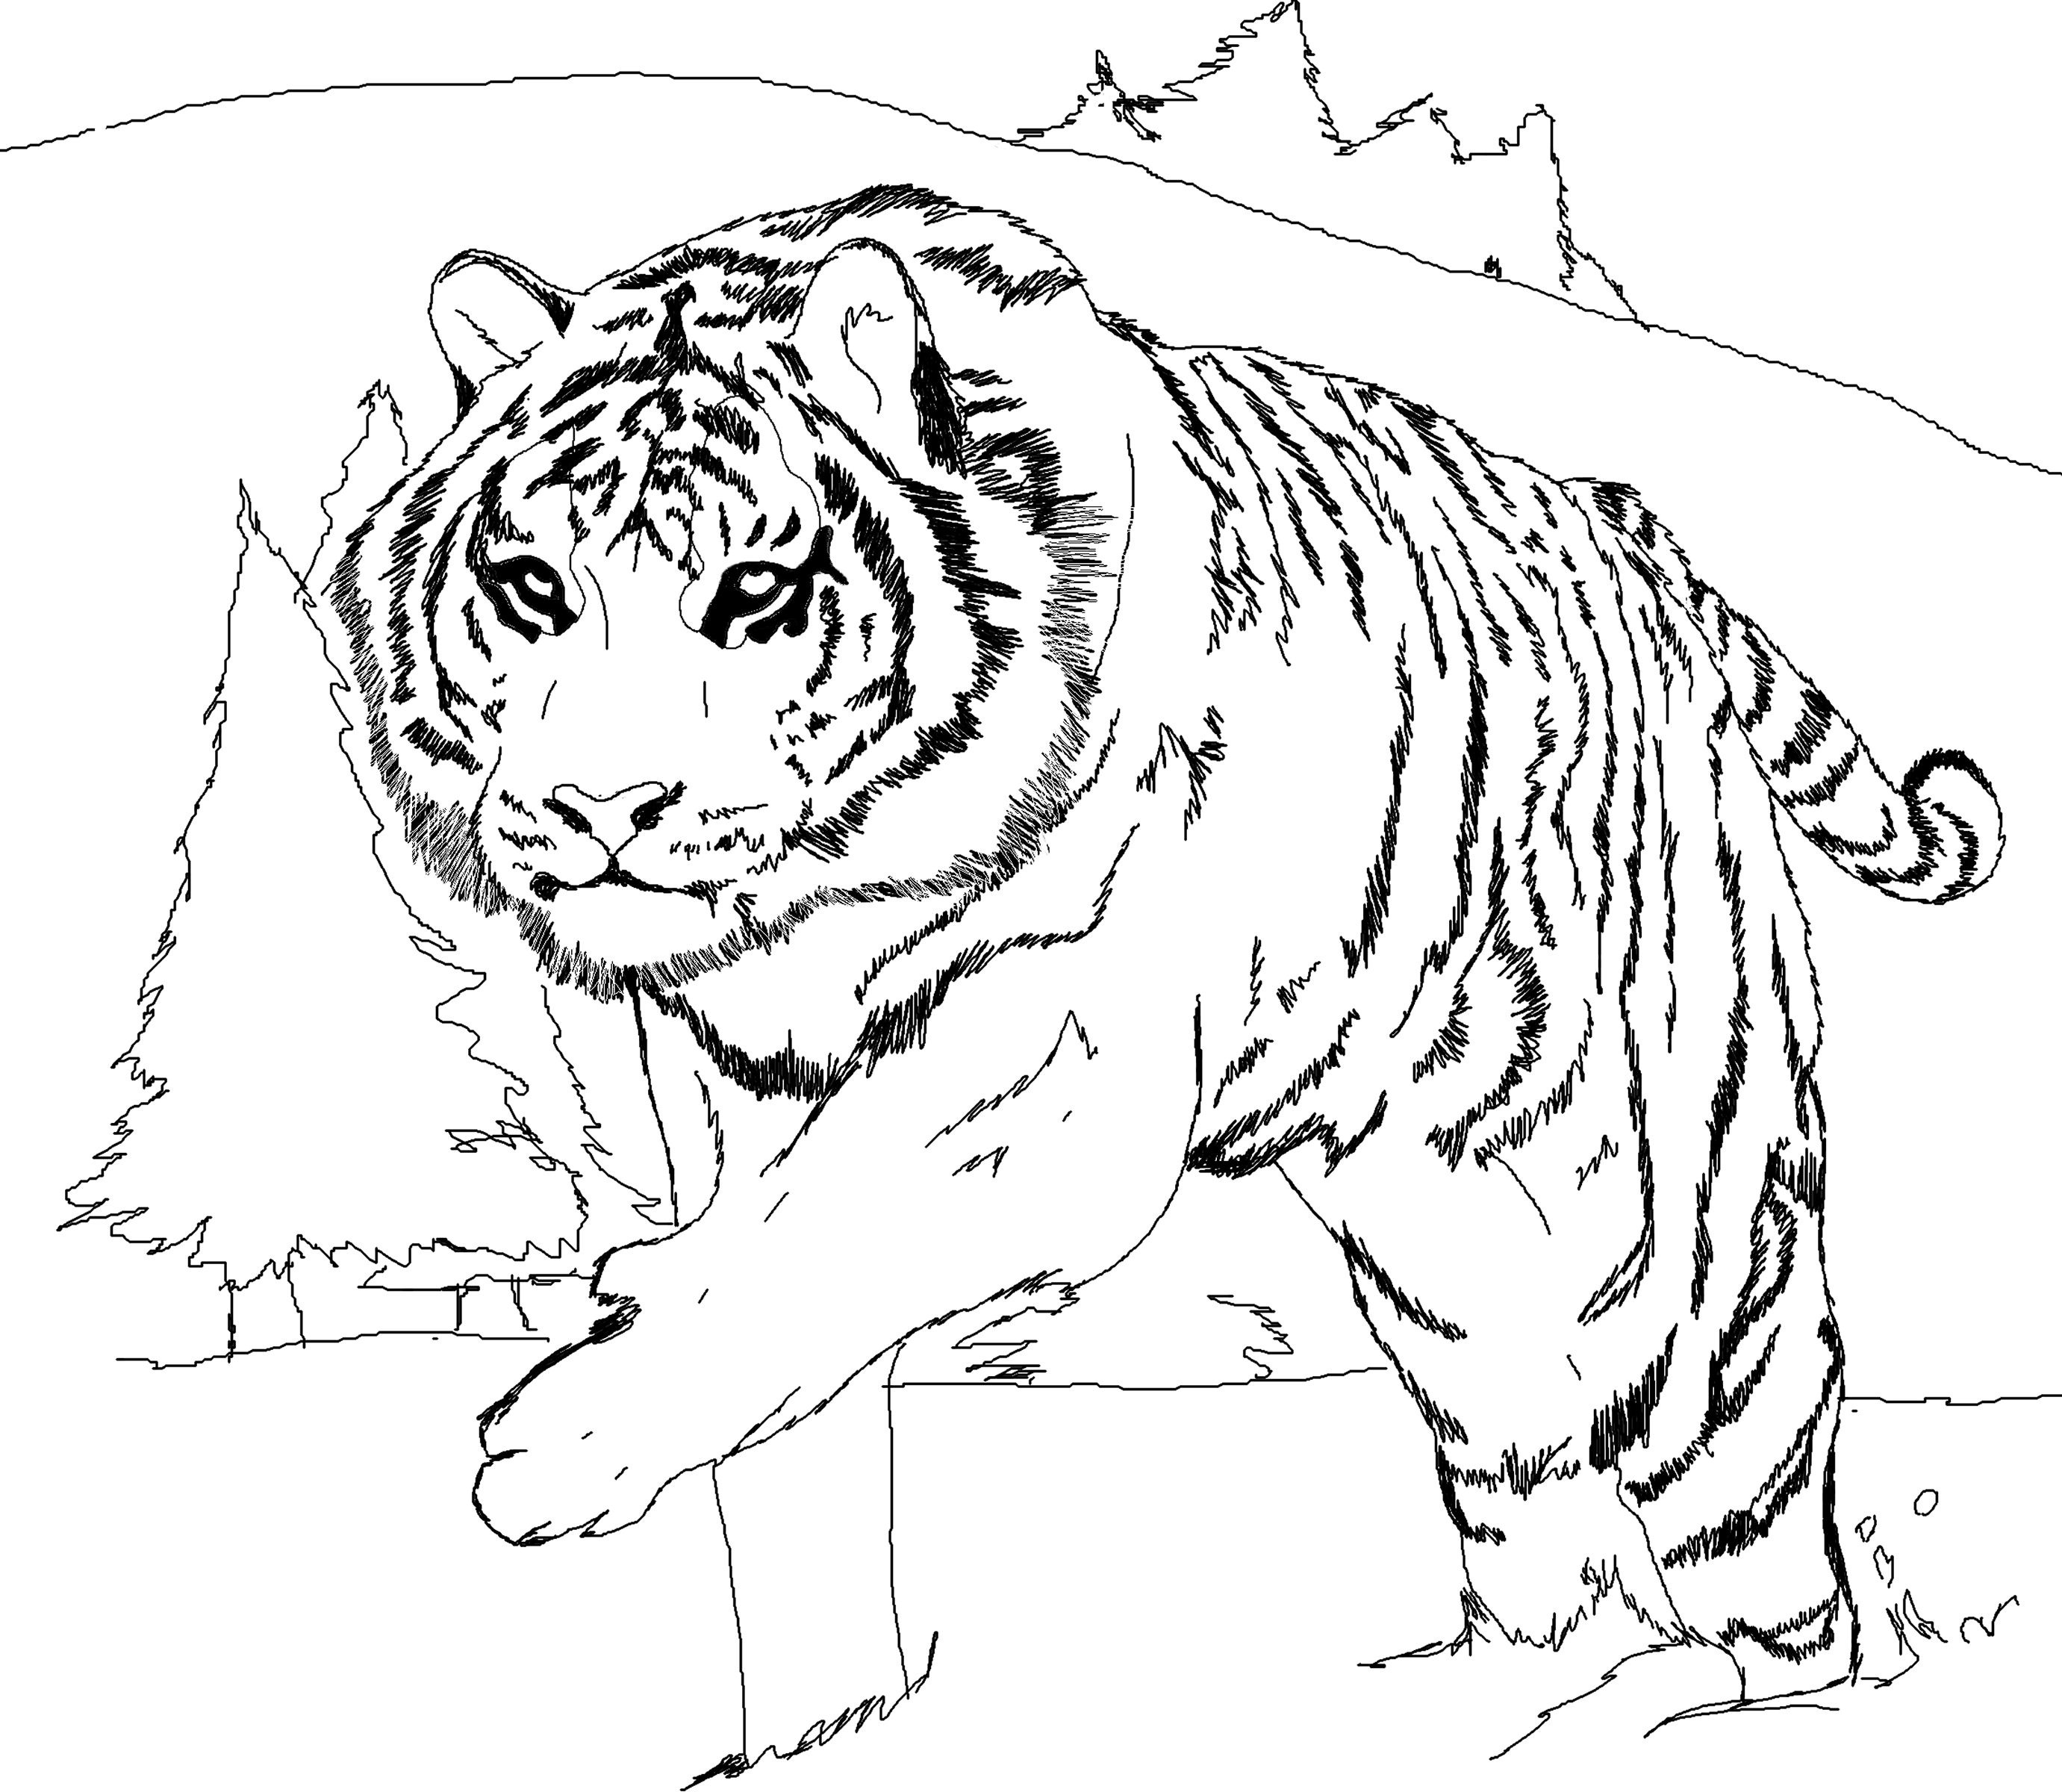 tiger coloring book pages free printable tiger coloring pages for kids tiger pages coloring book 1 1